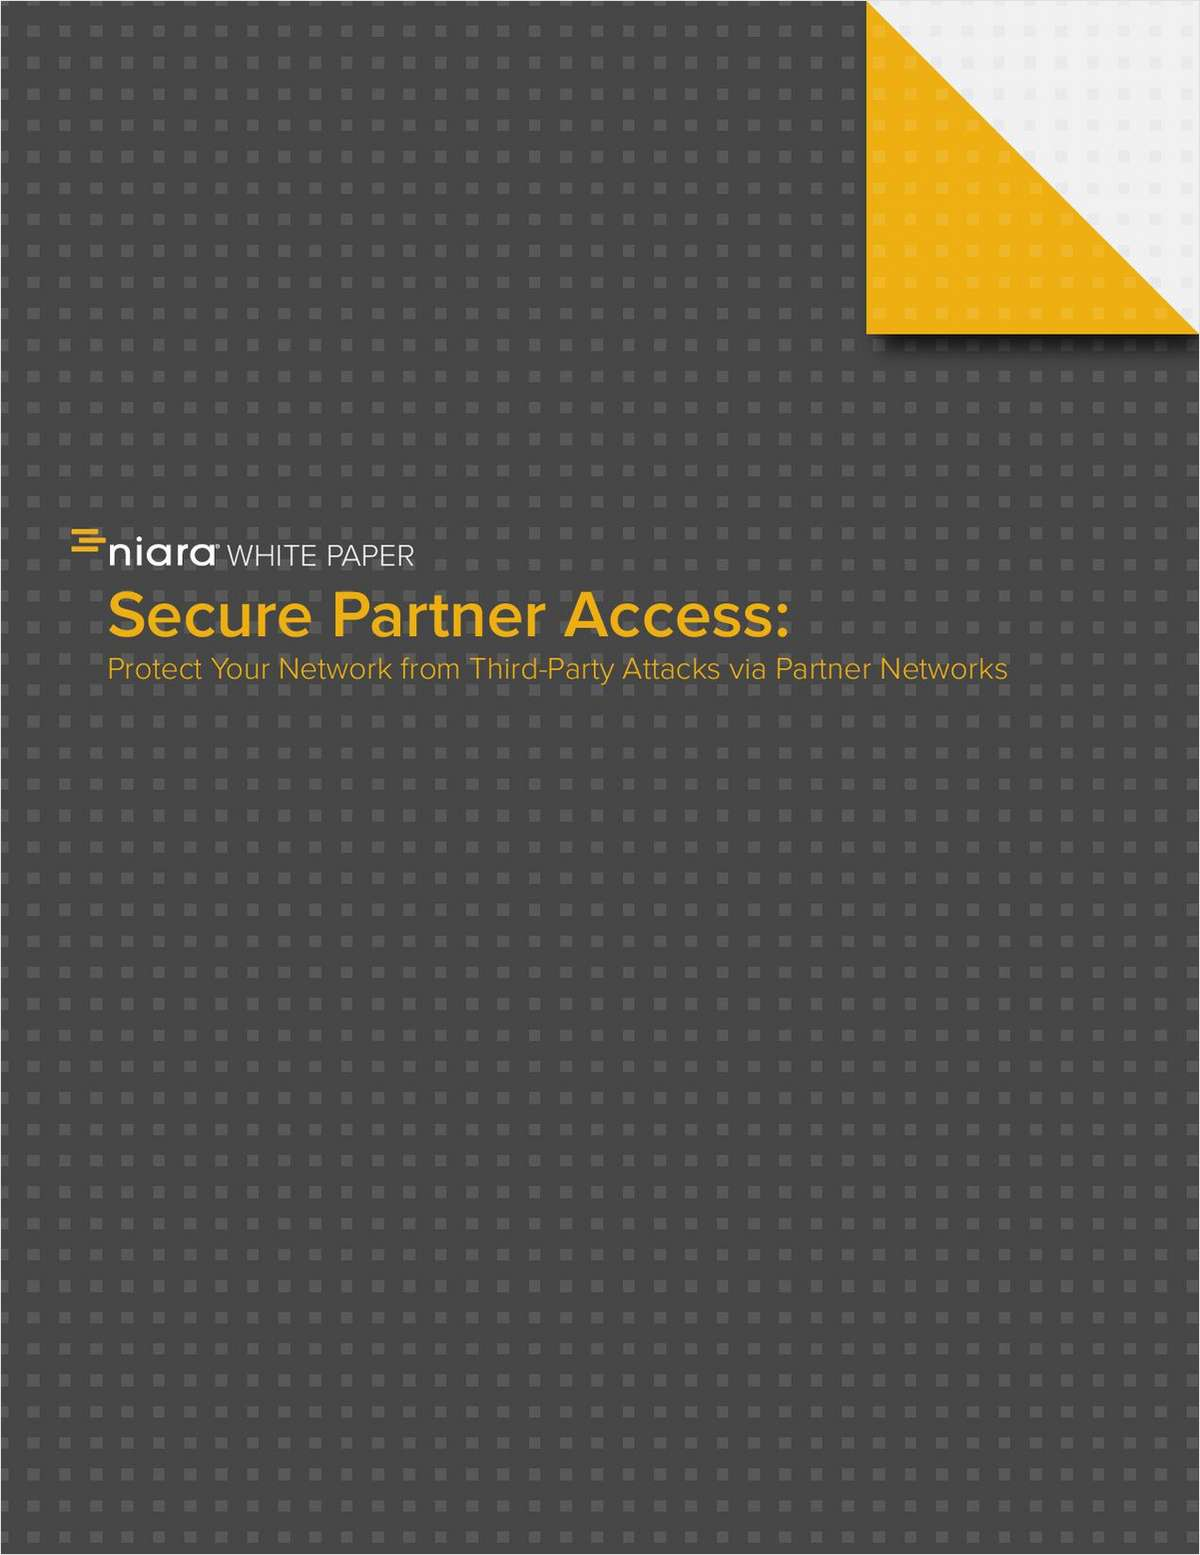 Secure Partner Access: Protect Your Network from Third-Party Attacks via Partner Networks